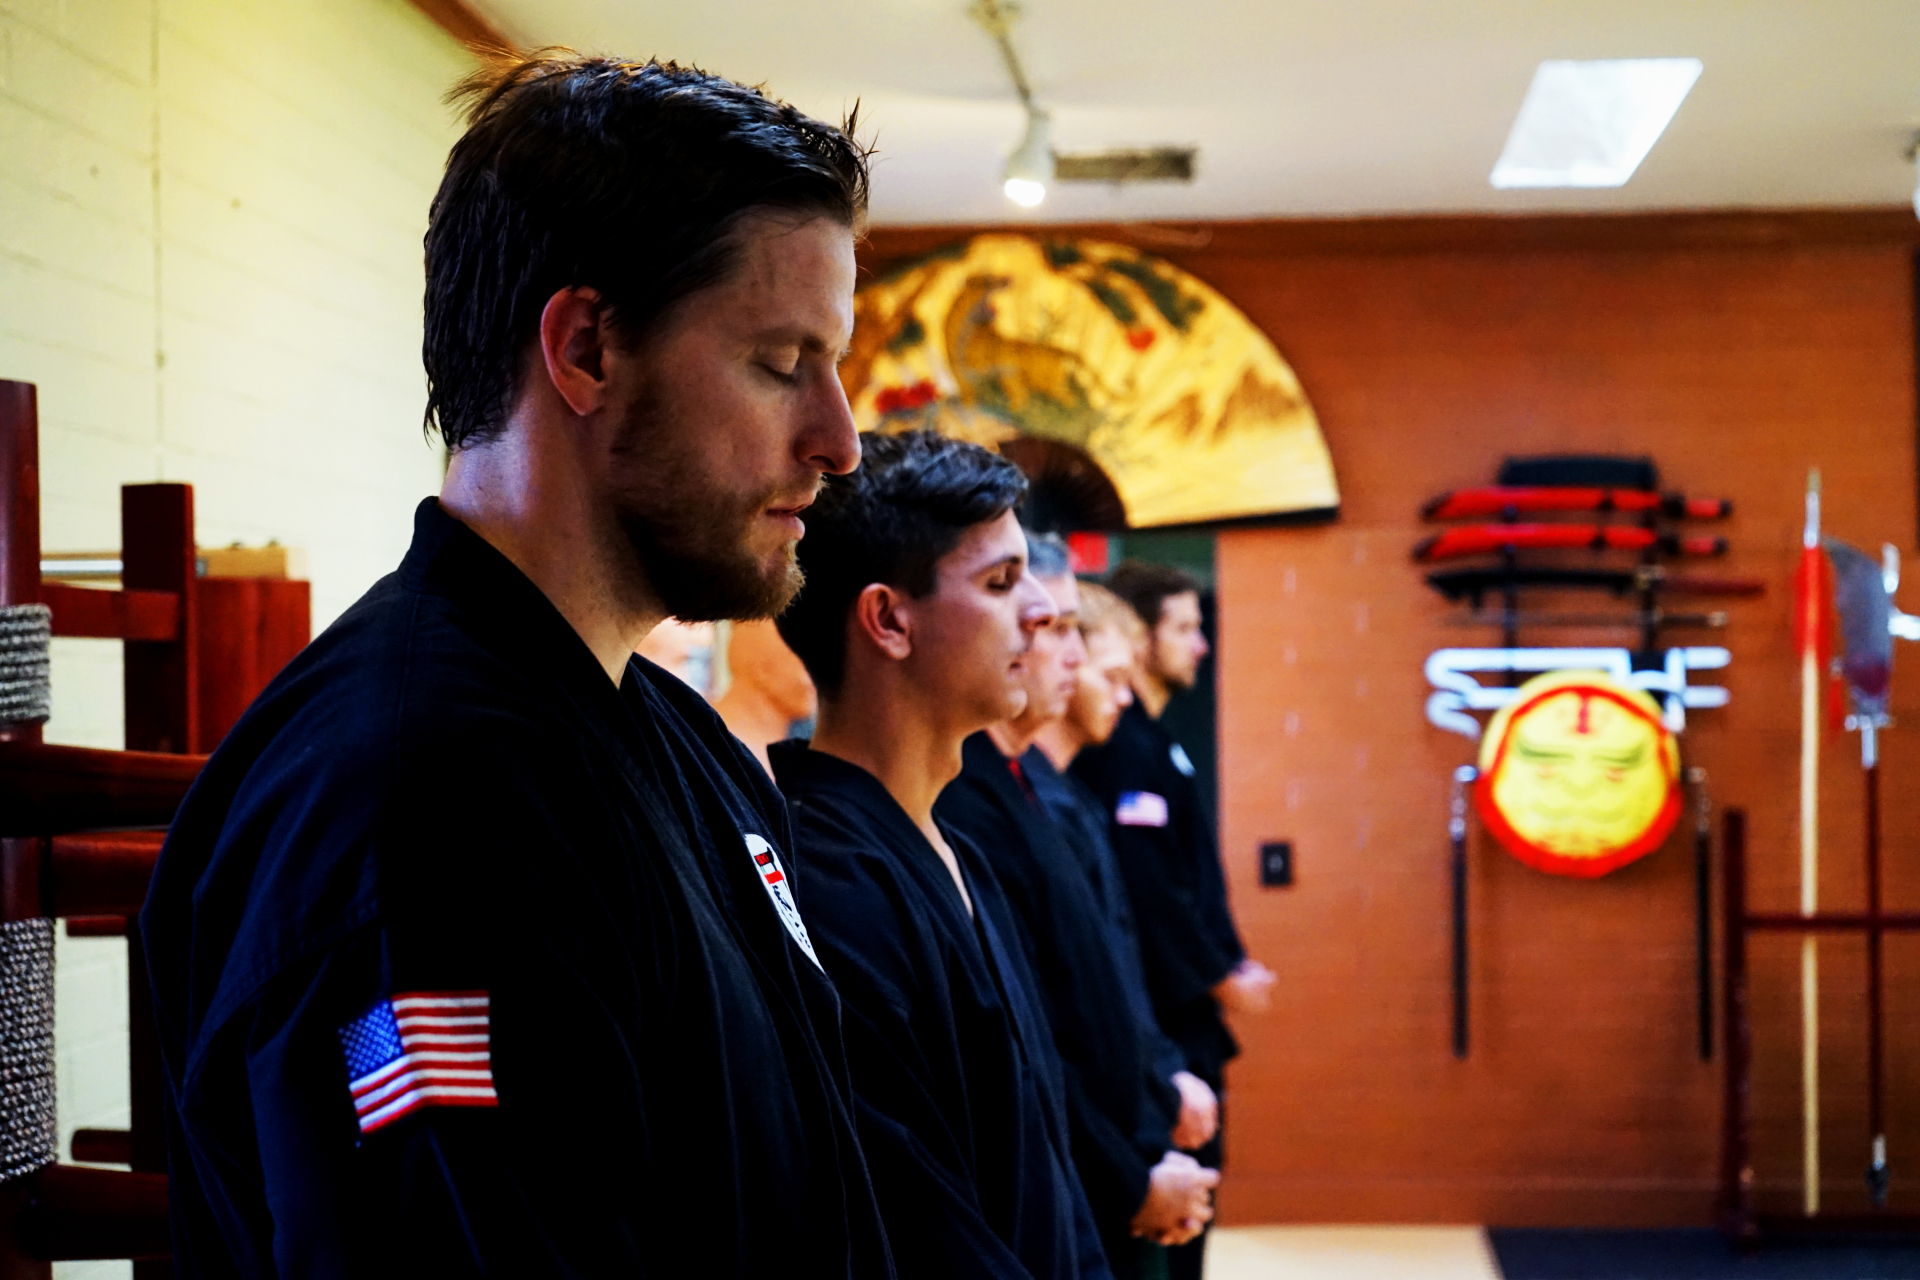 Sensei Joey of Mukei Goshin Jutsu preparing to train hard.